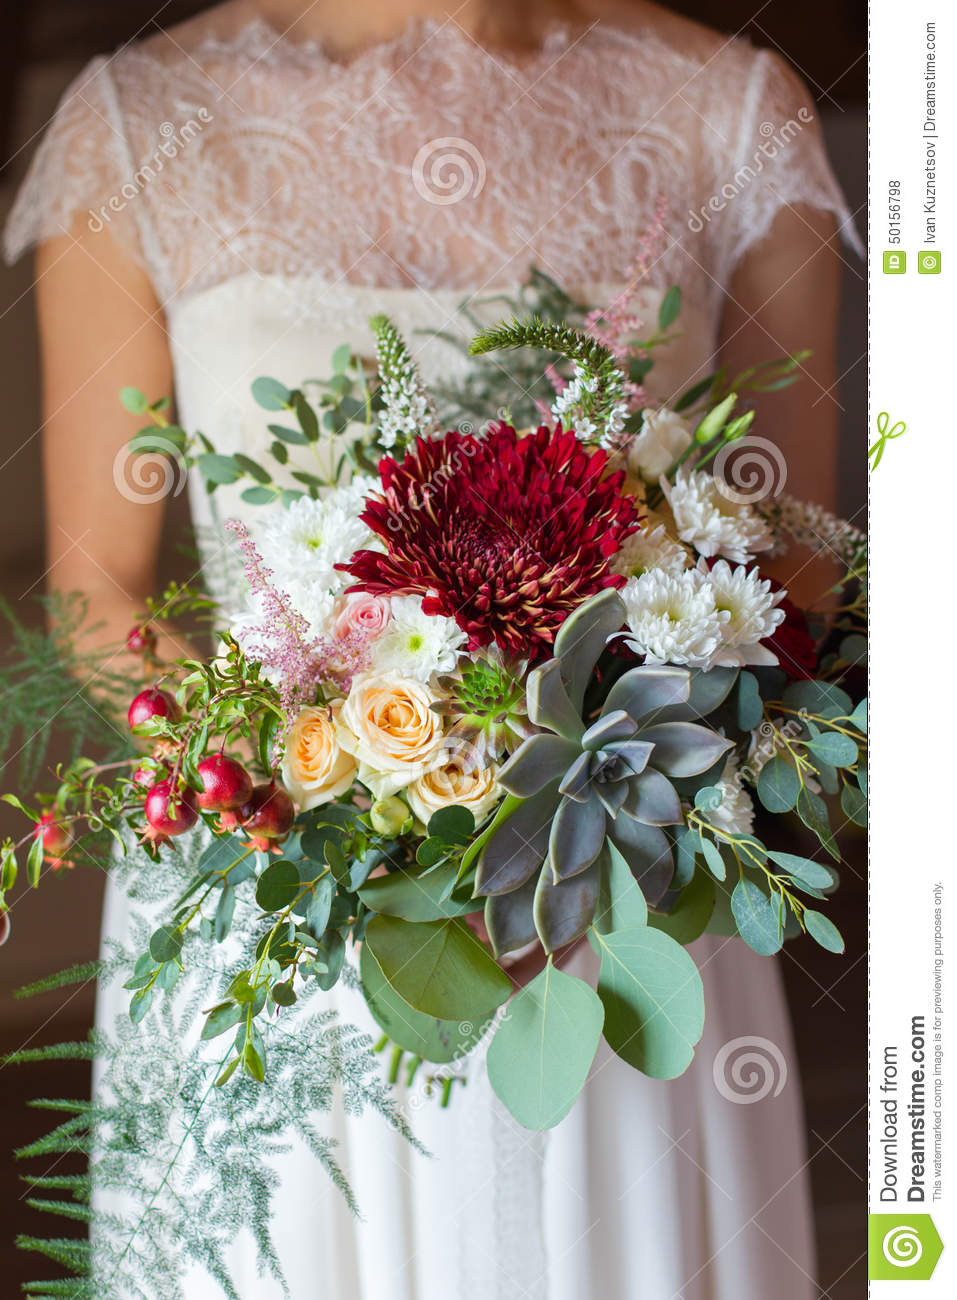 Bridal Bouquet With Succulent Stock Photo Image Of Marriage Pomegranate 50156798